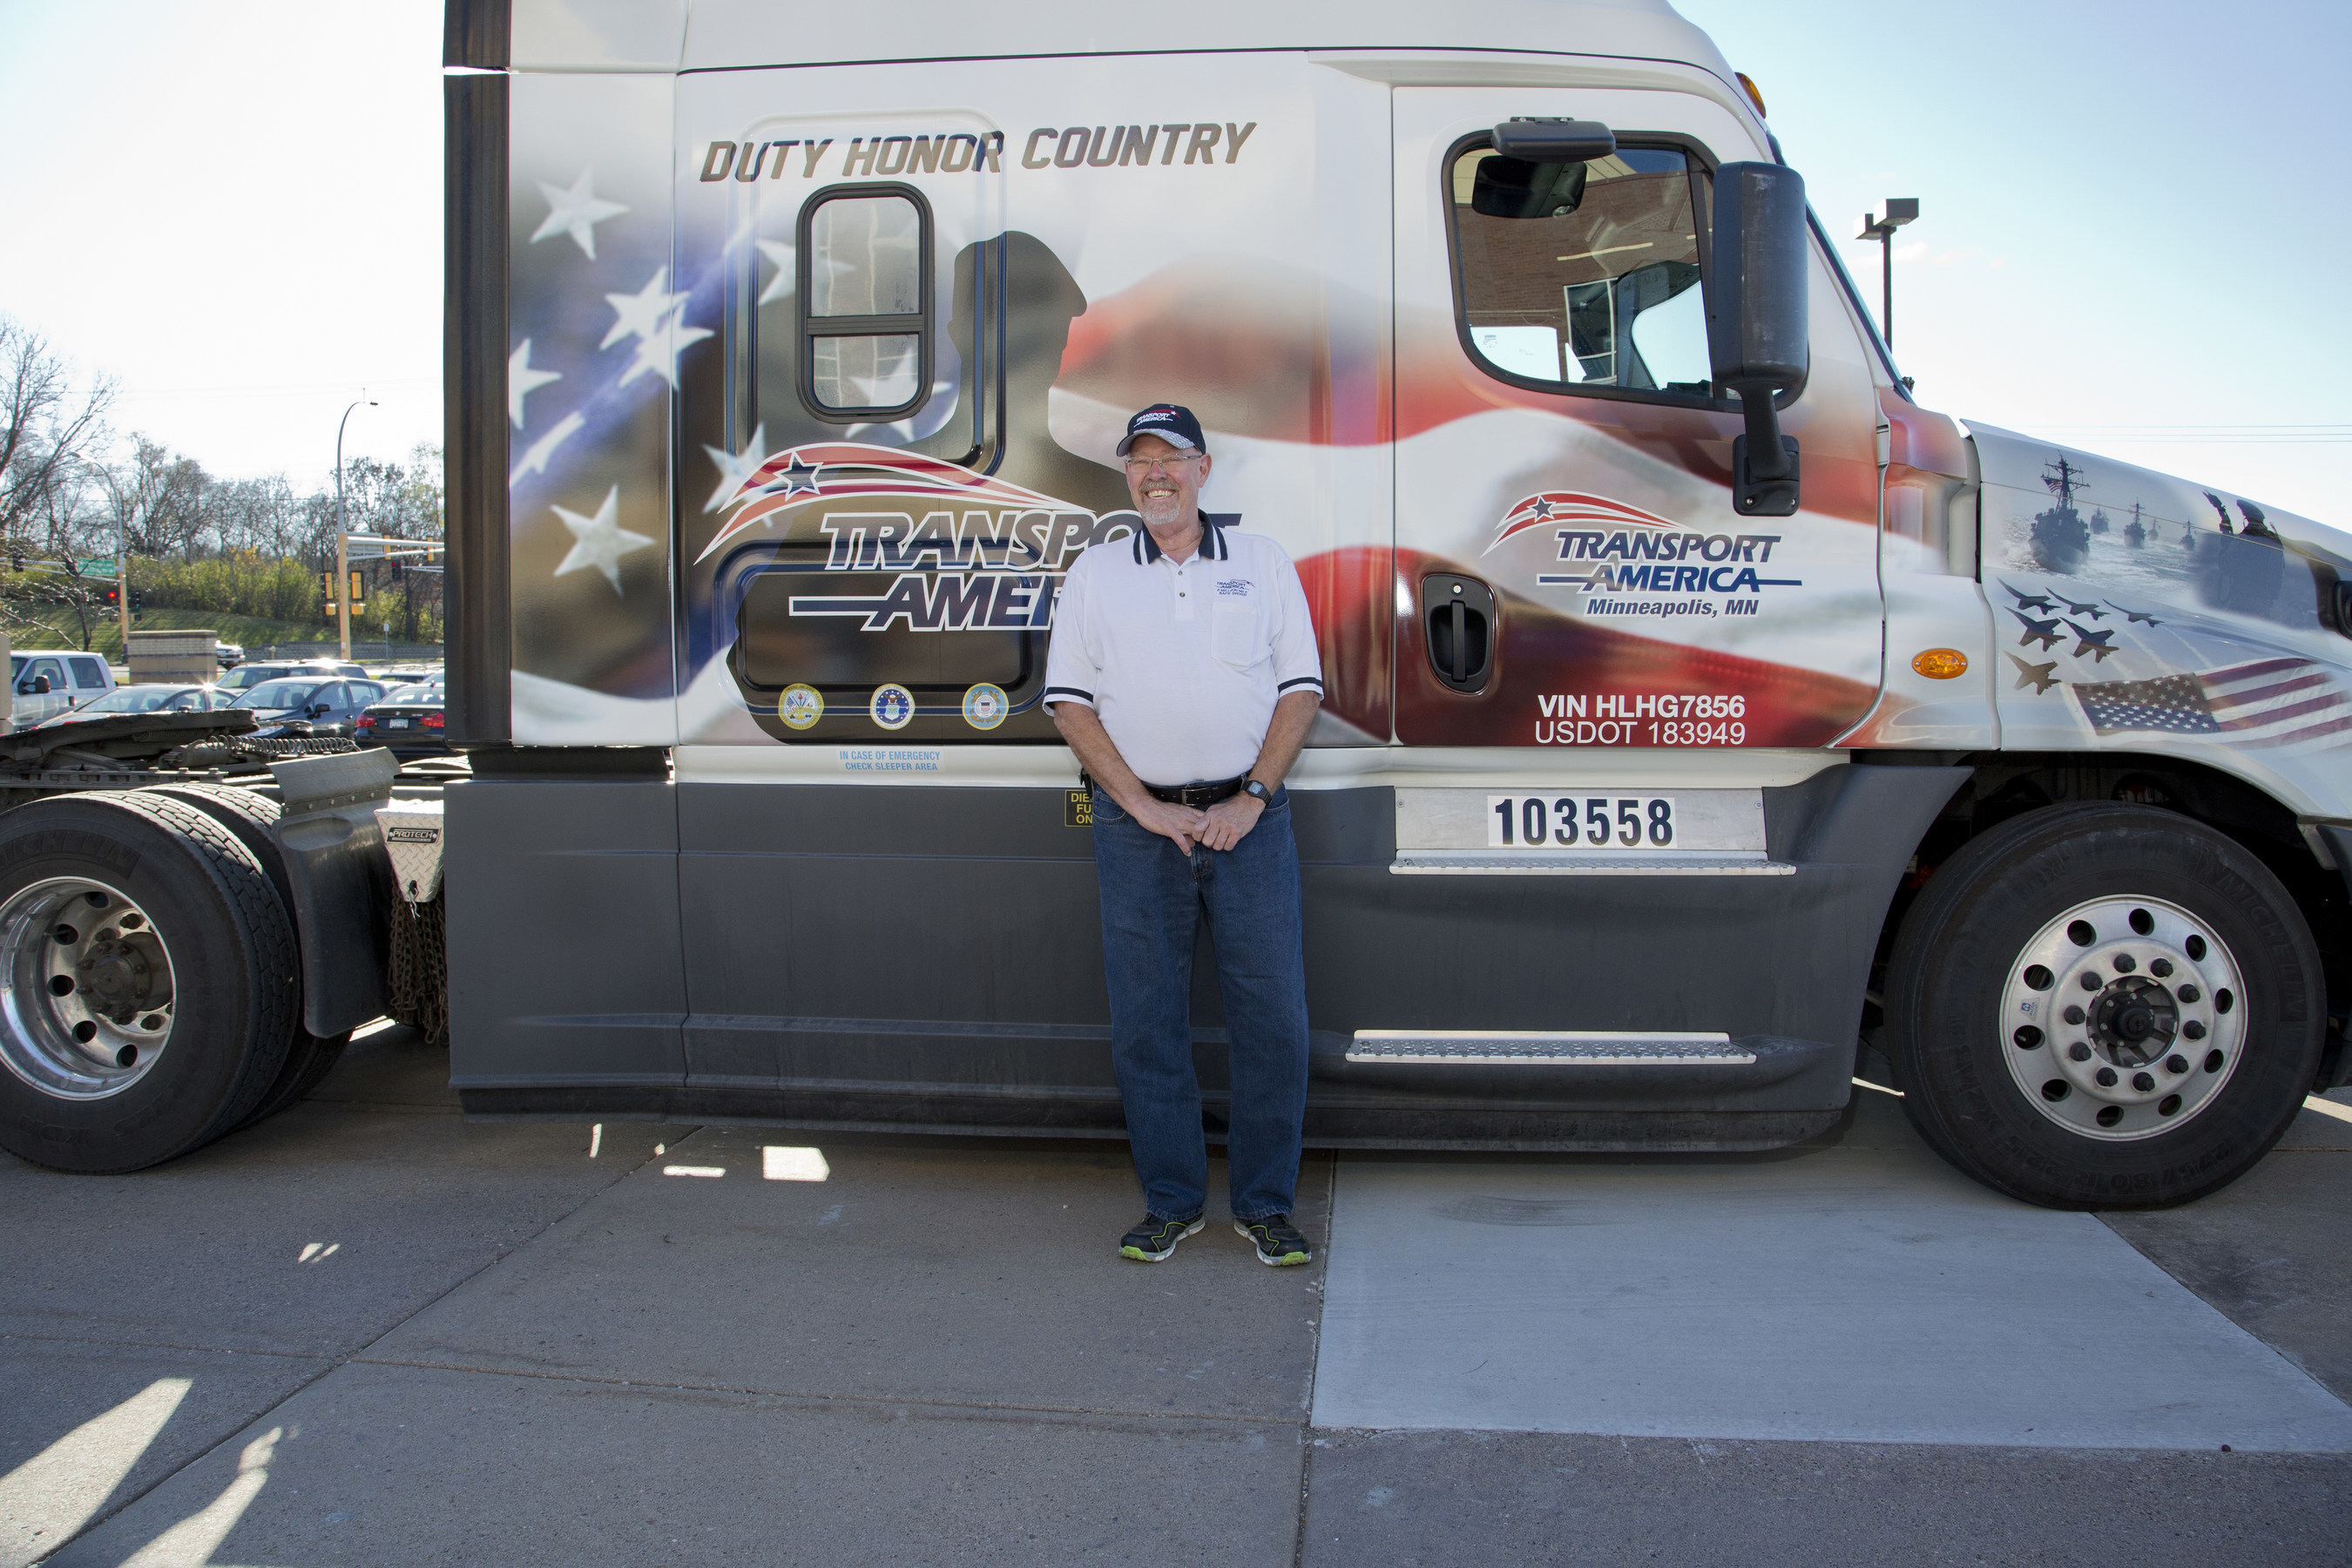 Transport America recognizes one of their drivers and military veteran, Robert Harp, on Veteran's Day with a custom military truck wrap. Robert was in the Army Airborne having two years of active duty and 25 years in the reserves. Robert has been a driver with Transport America since 1998.